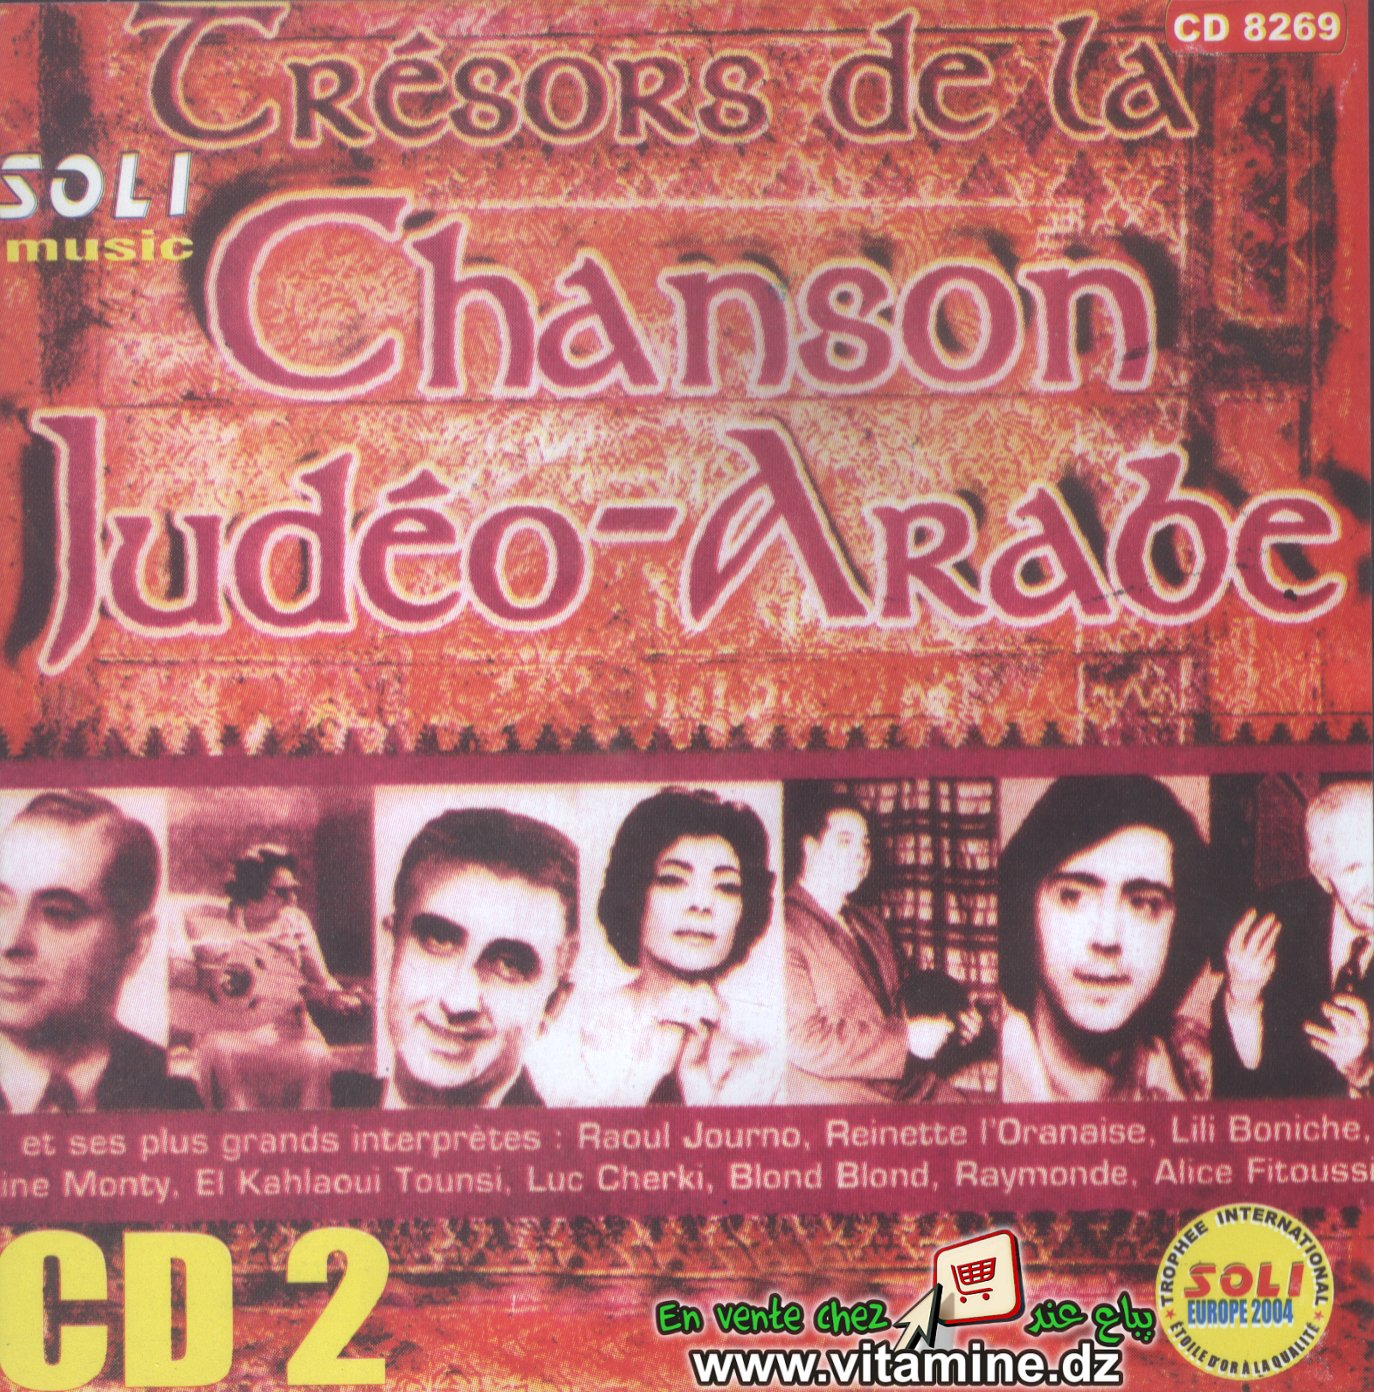 Tresors De La Chanson Judeo-Arabe CD2